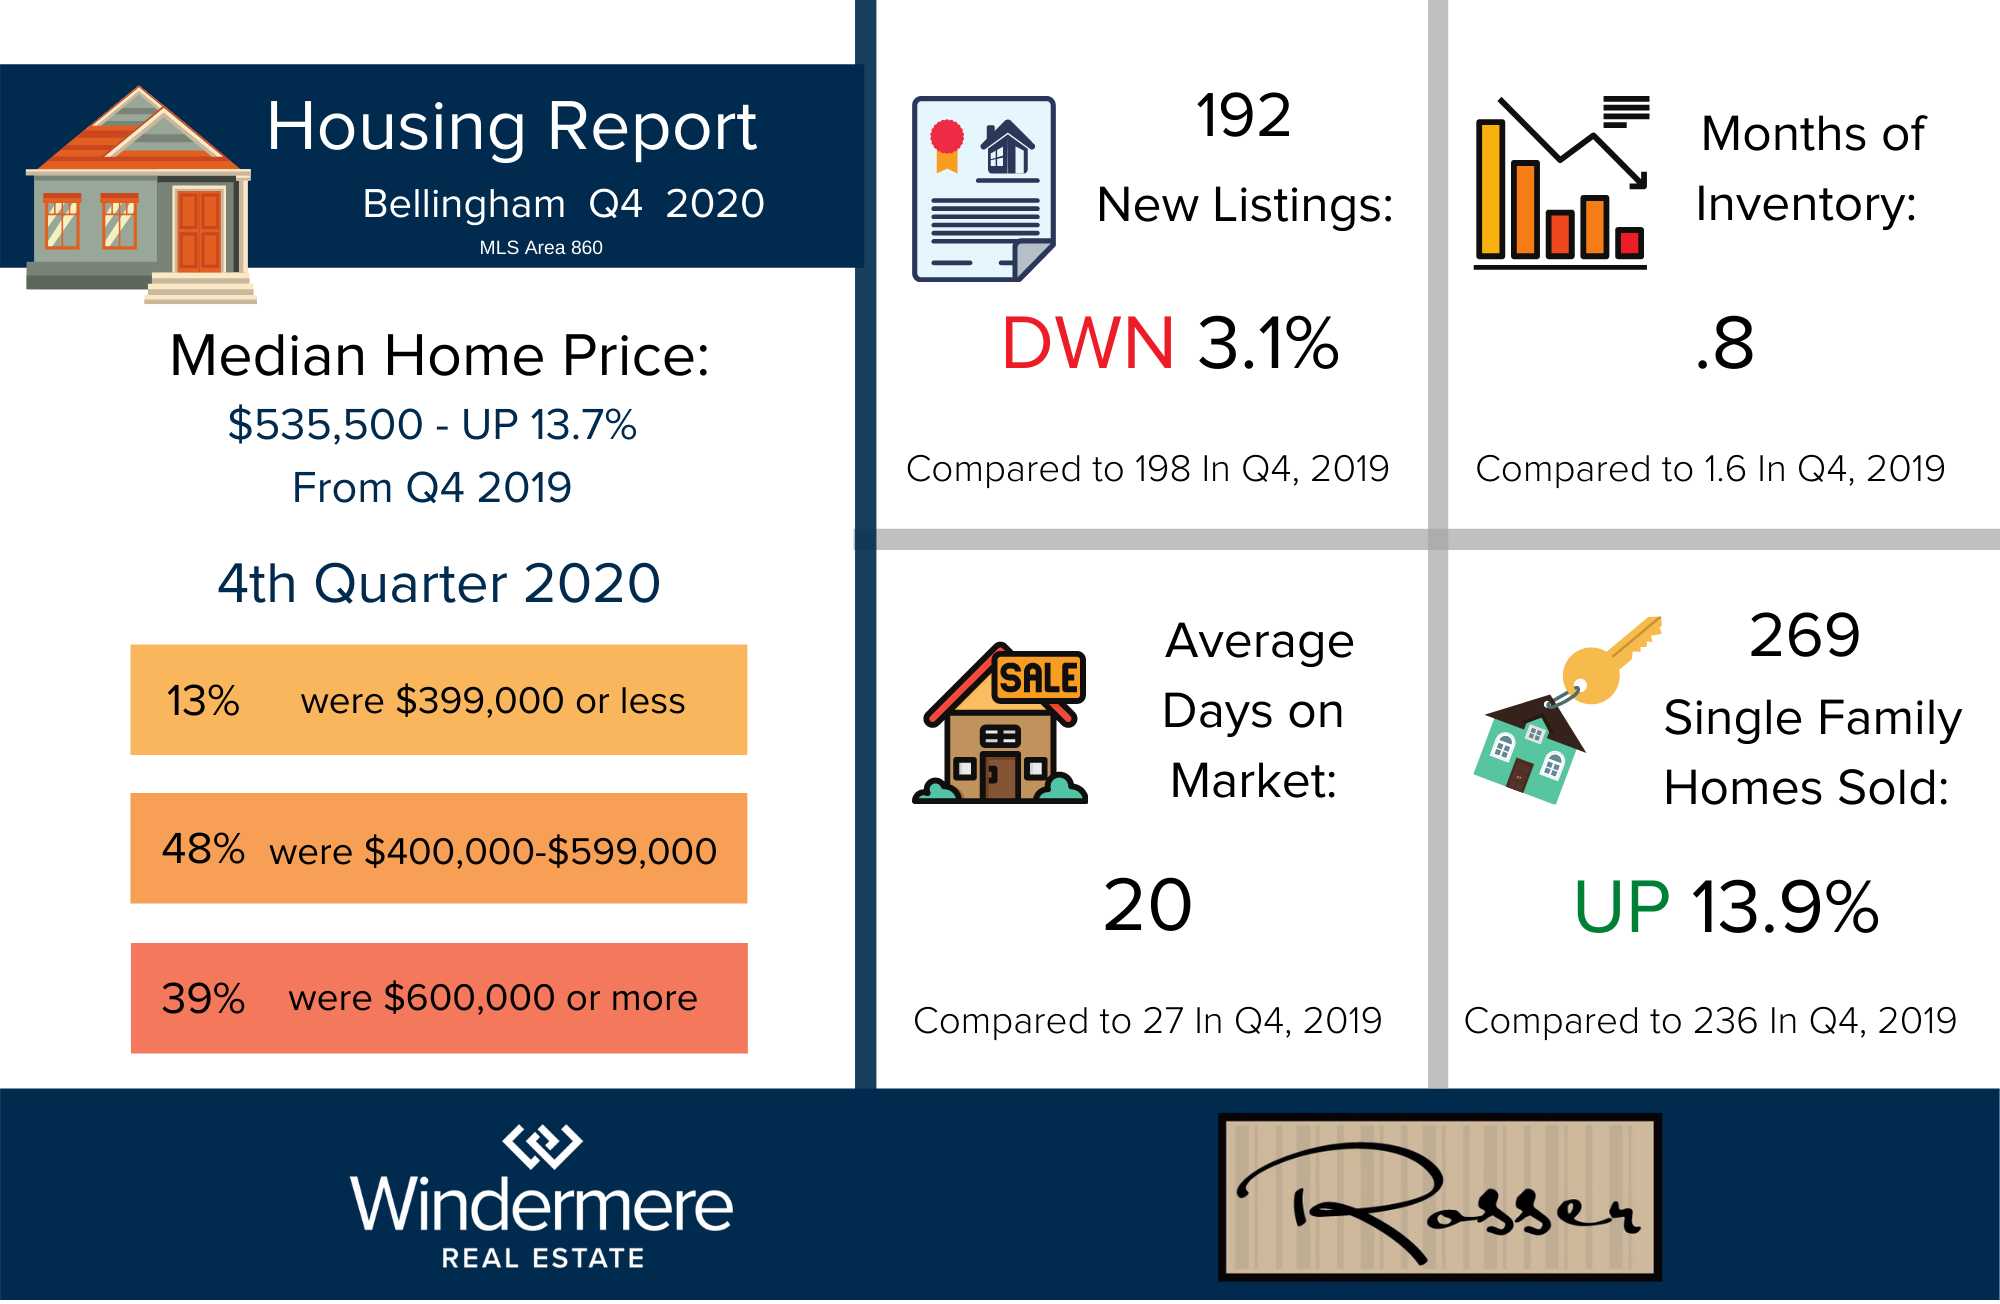 Q4_2020 Housing Report Infographic